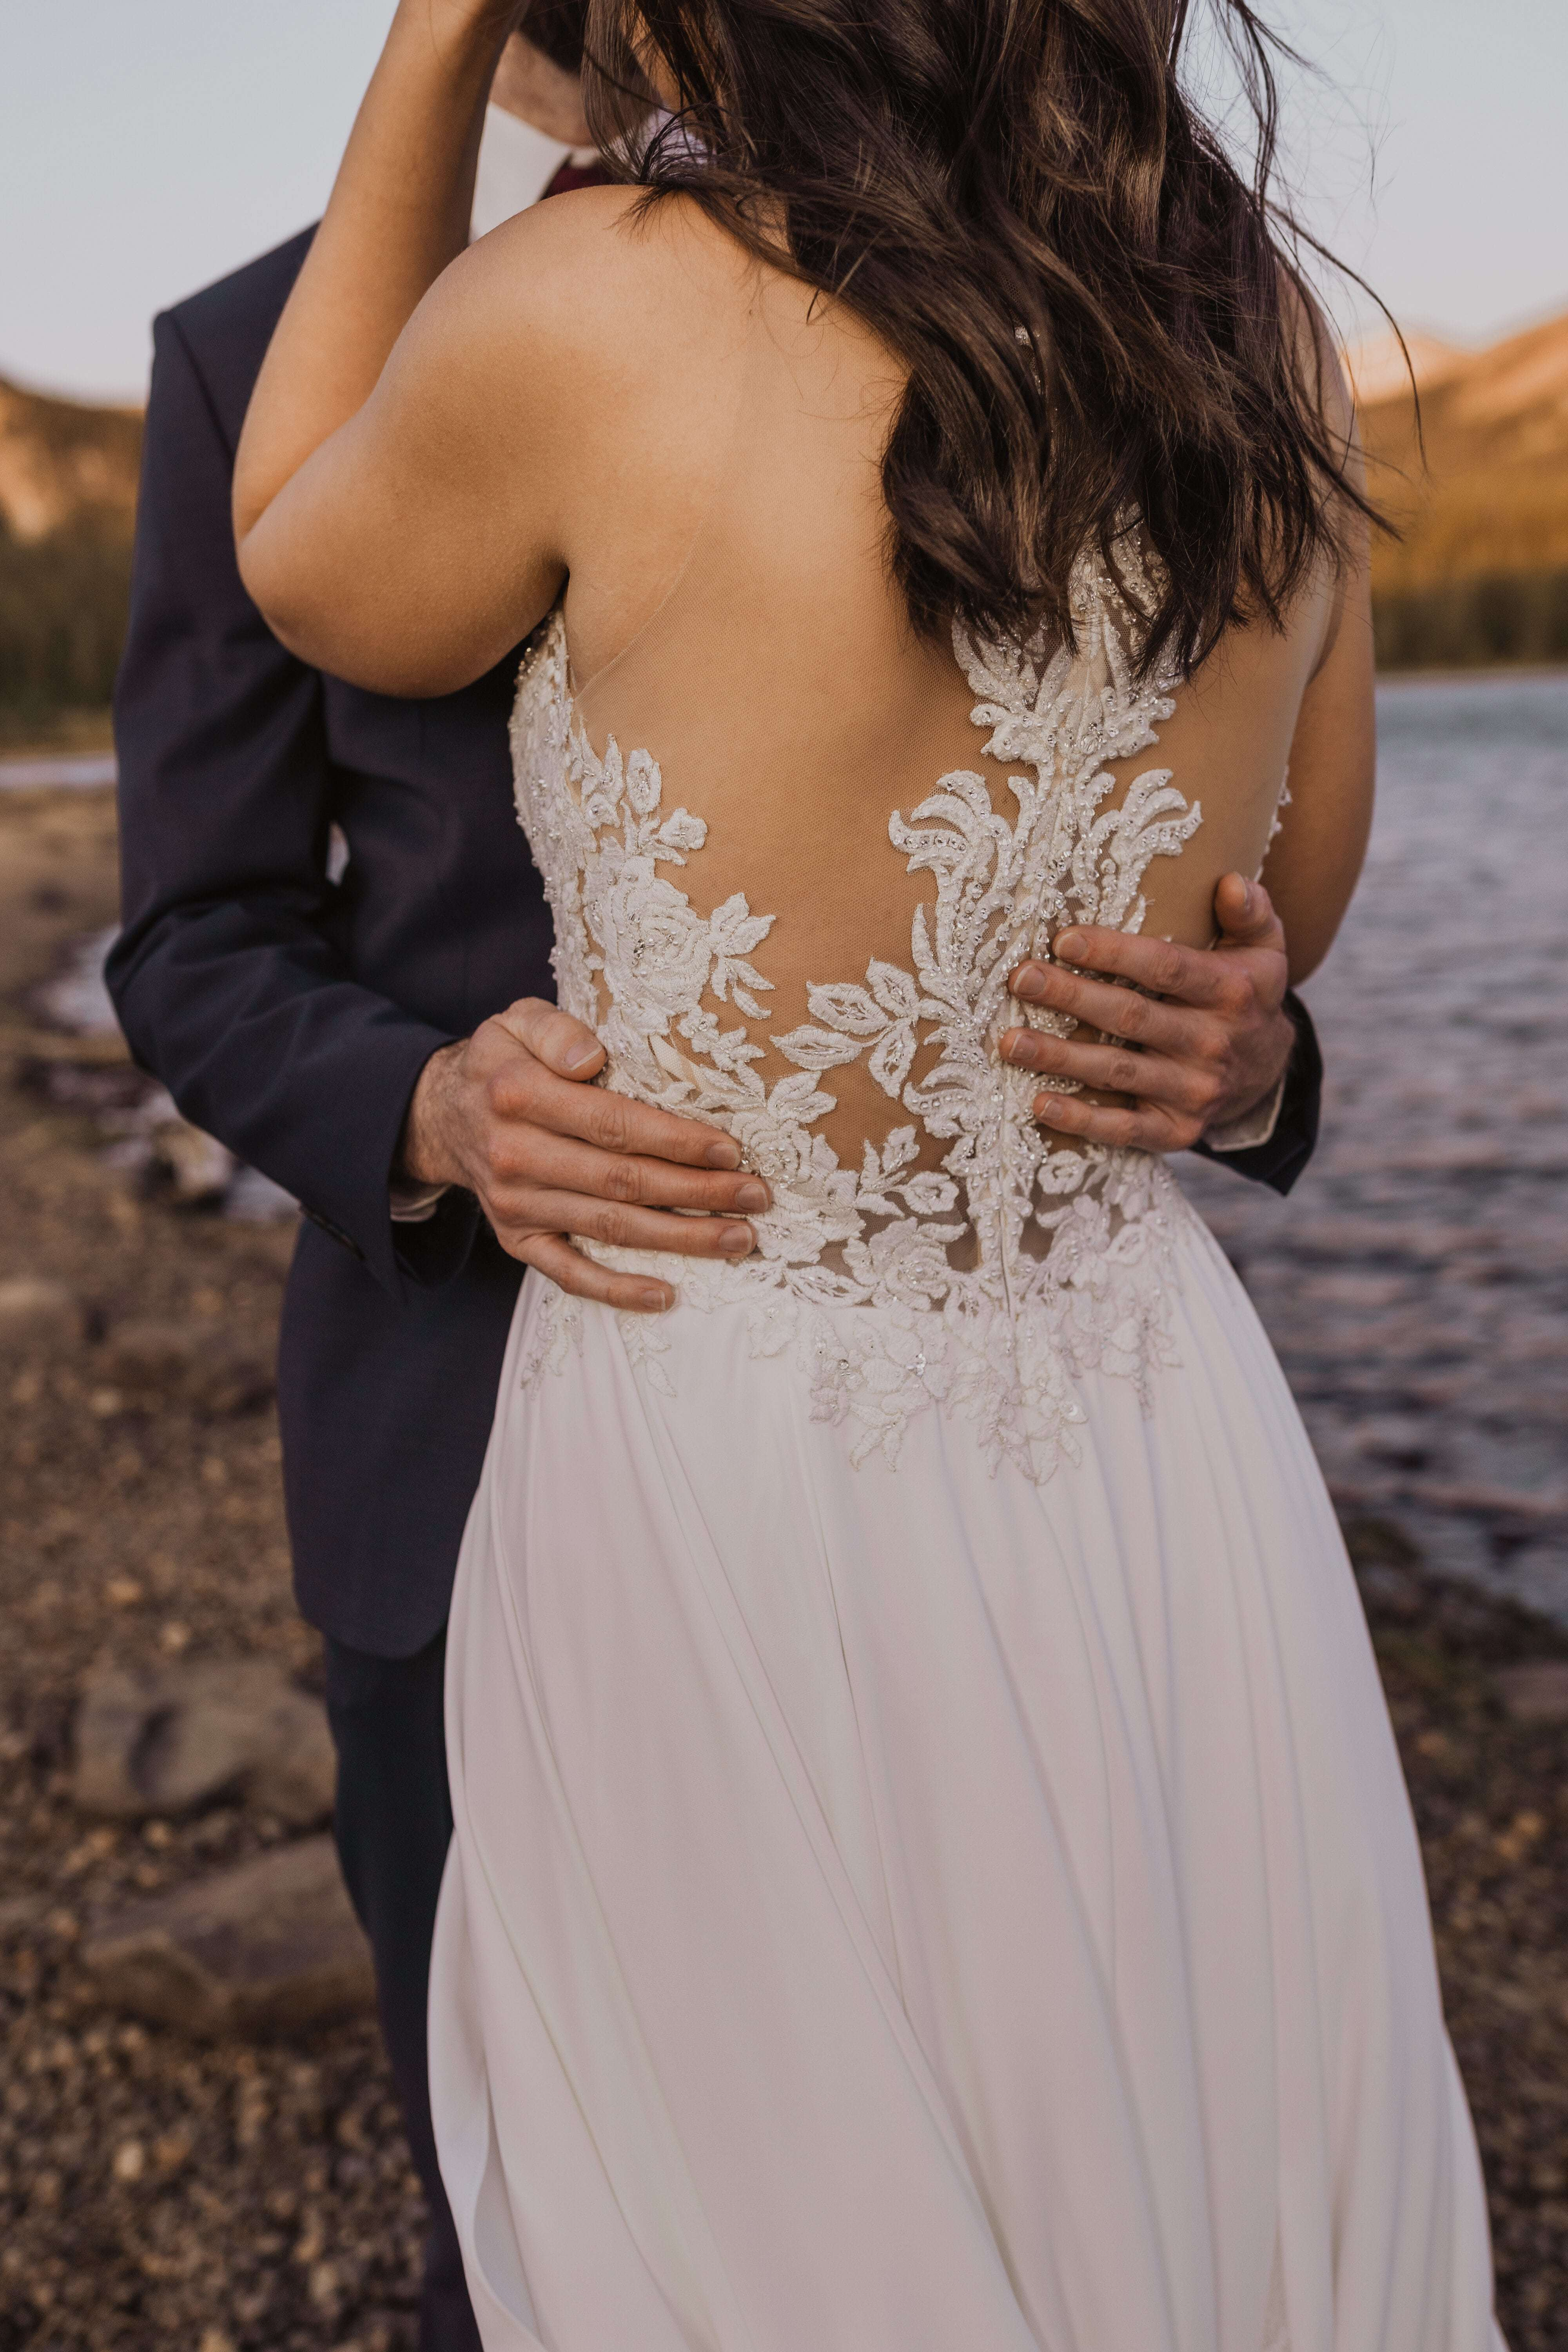 Allure bridals - 9510 size 14 - $900 - (53% OFF)